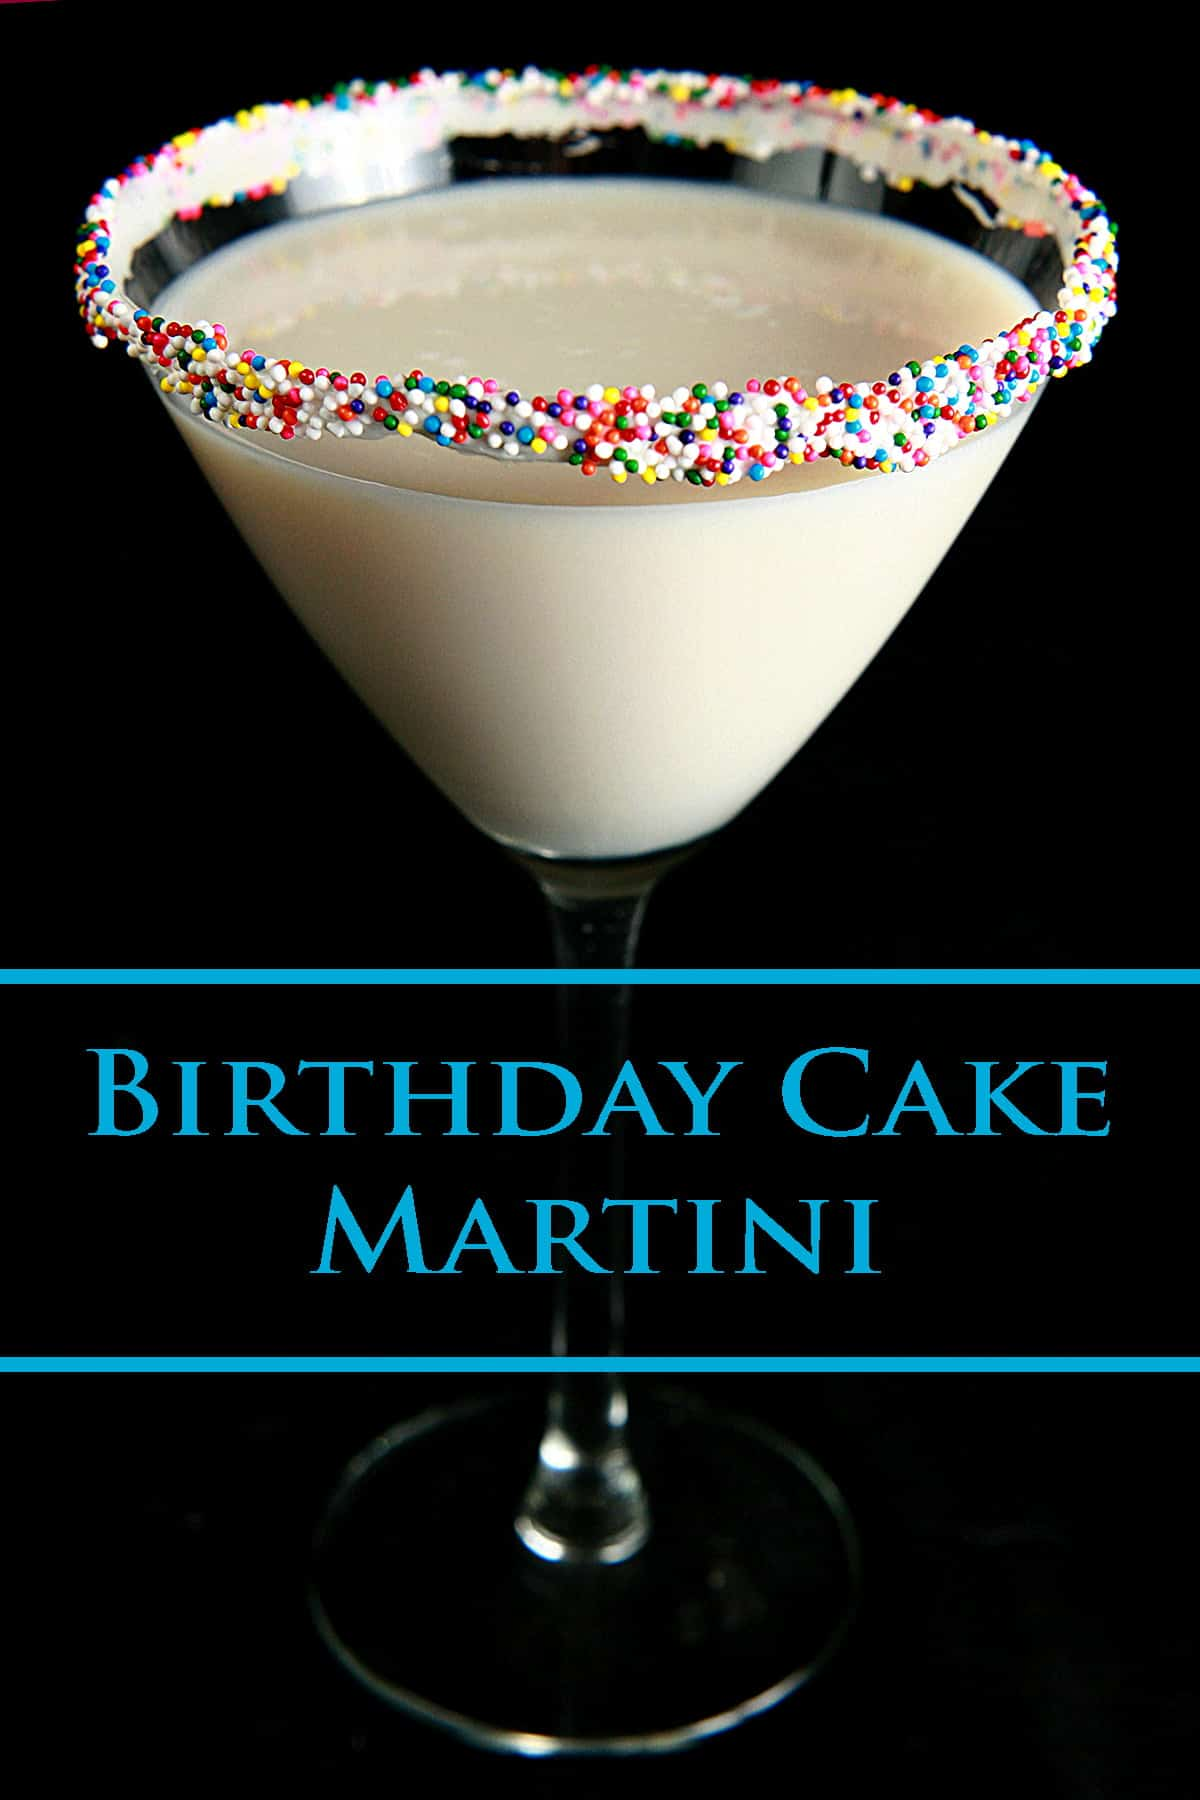 A close up view of a birthday cake martini - a creamy white drink in a martini glass. The rim is coated with colourful nonpareils.